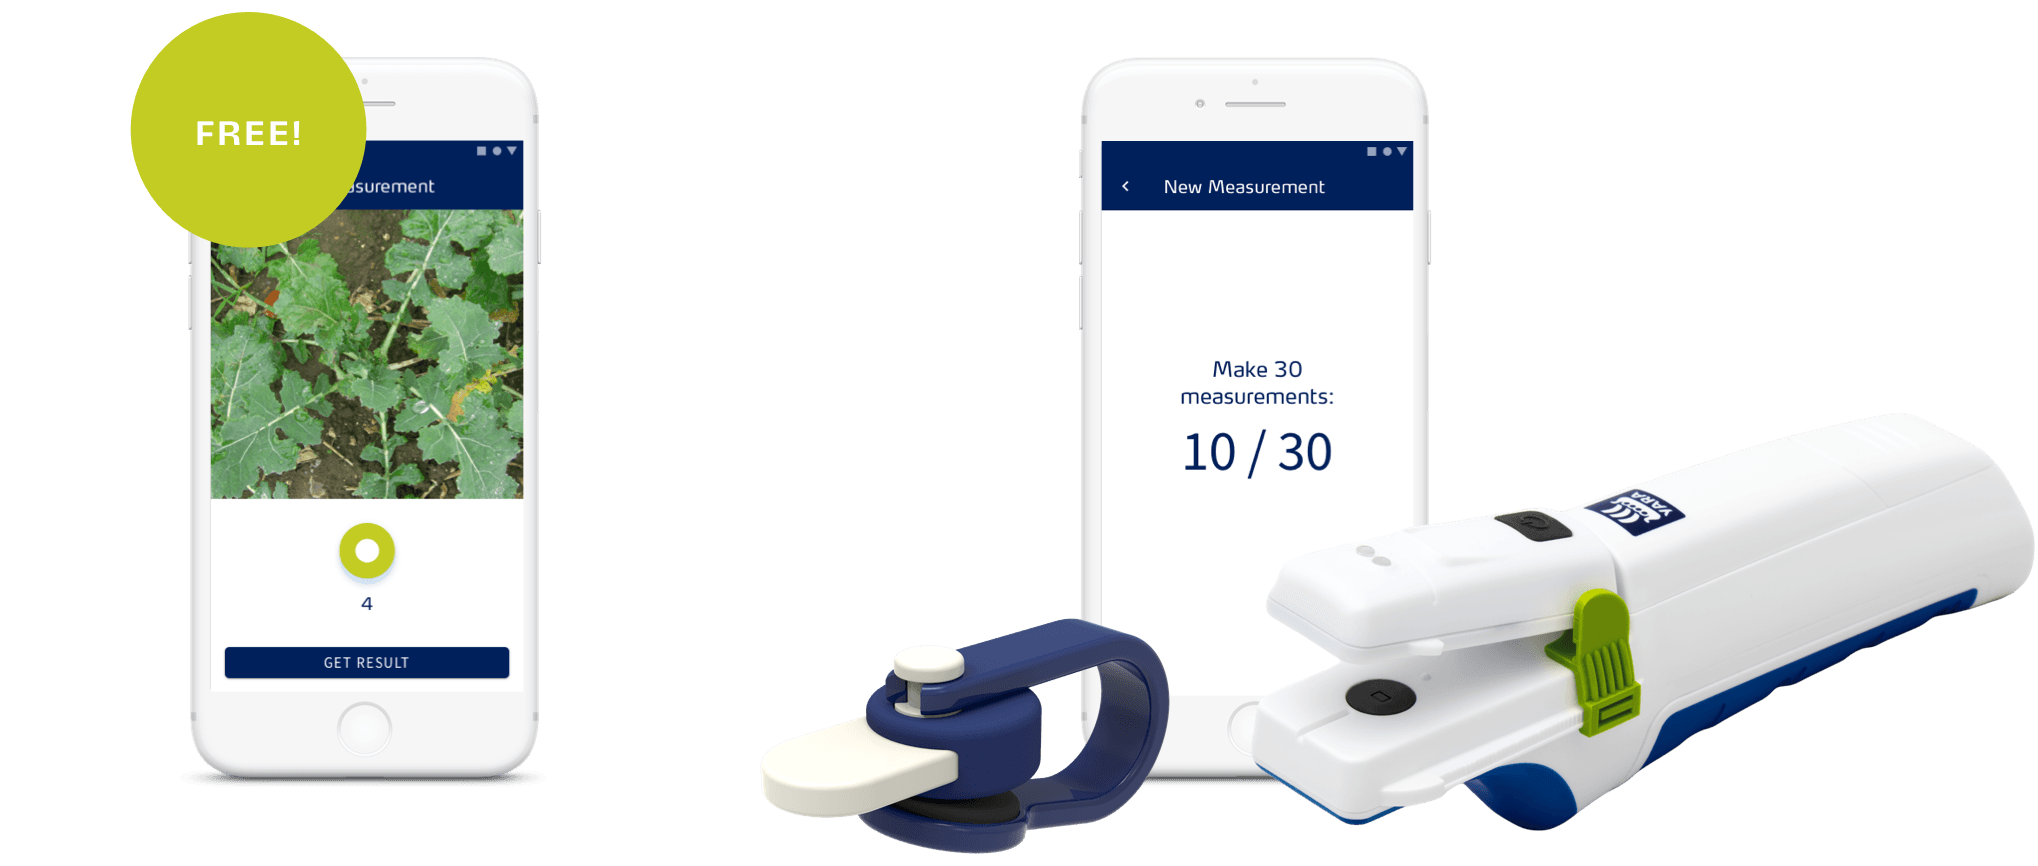 HIGH_Artboard_Phones@2x-compressor.png